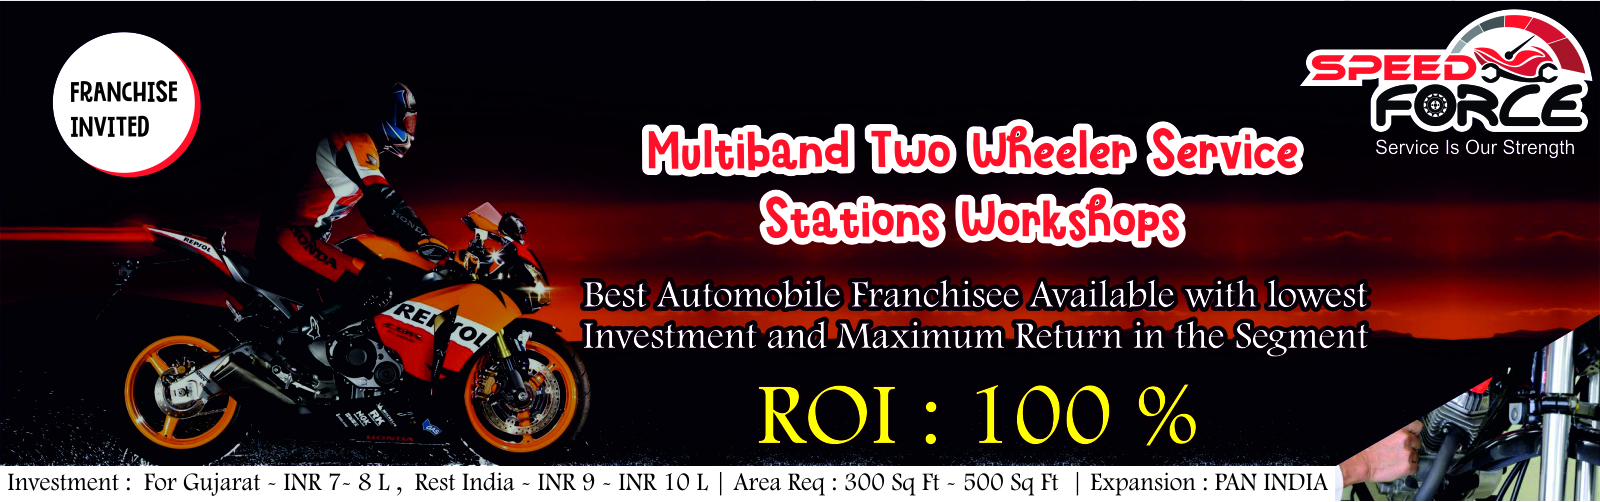 admin/photos/Speedforce (Multiband Two Wheeler Service Stations Workshops)